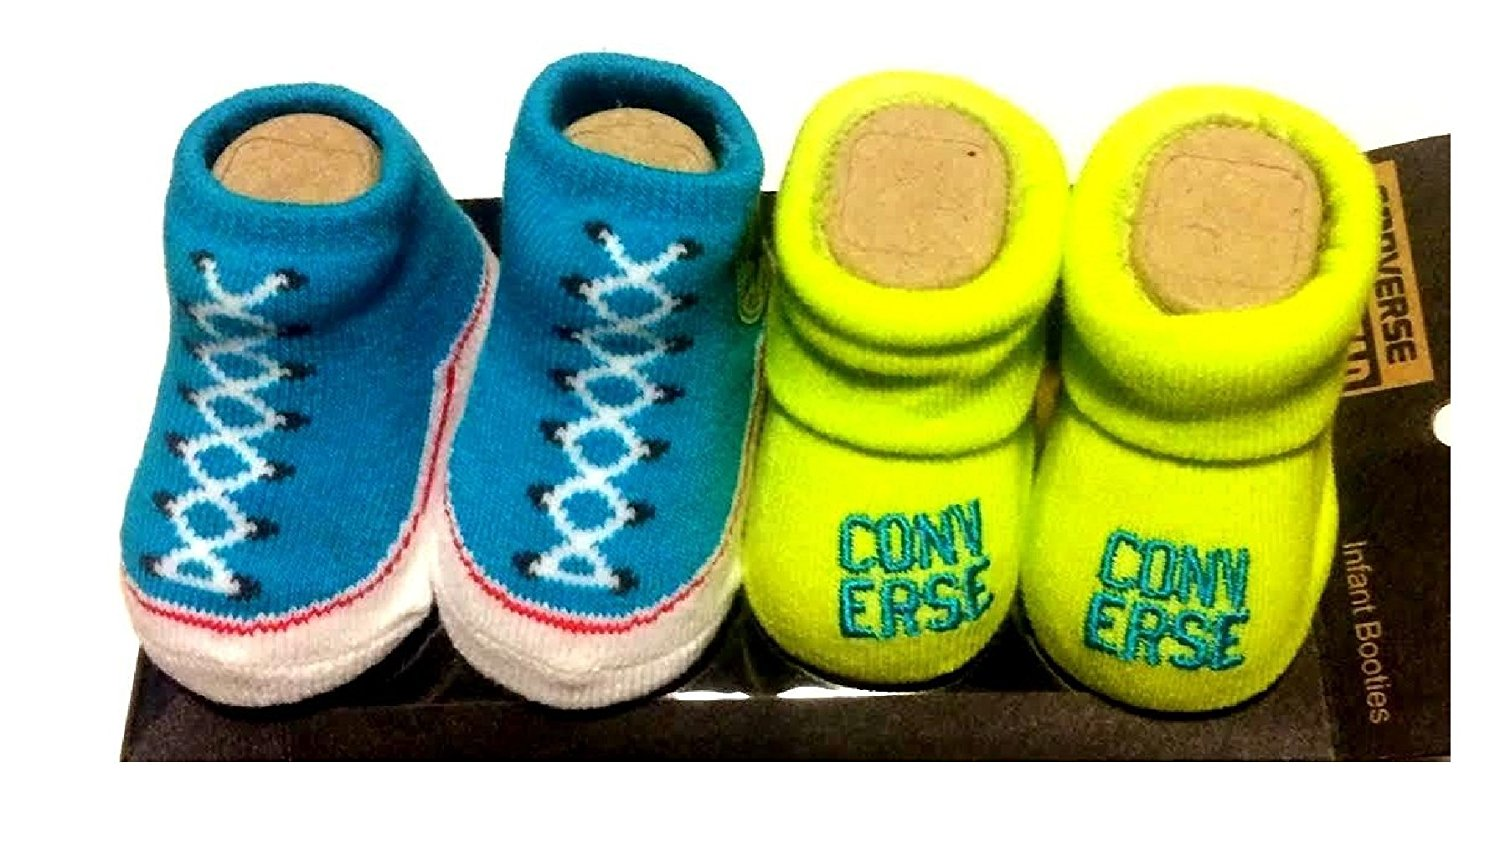 272f26816d96 Get Quotations · Converse 2 Pair Infant Blue Neon Booties Socks Size 0-6M  Gift Box